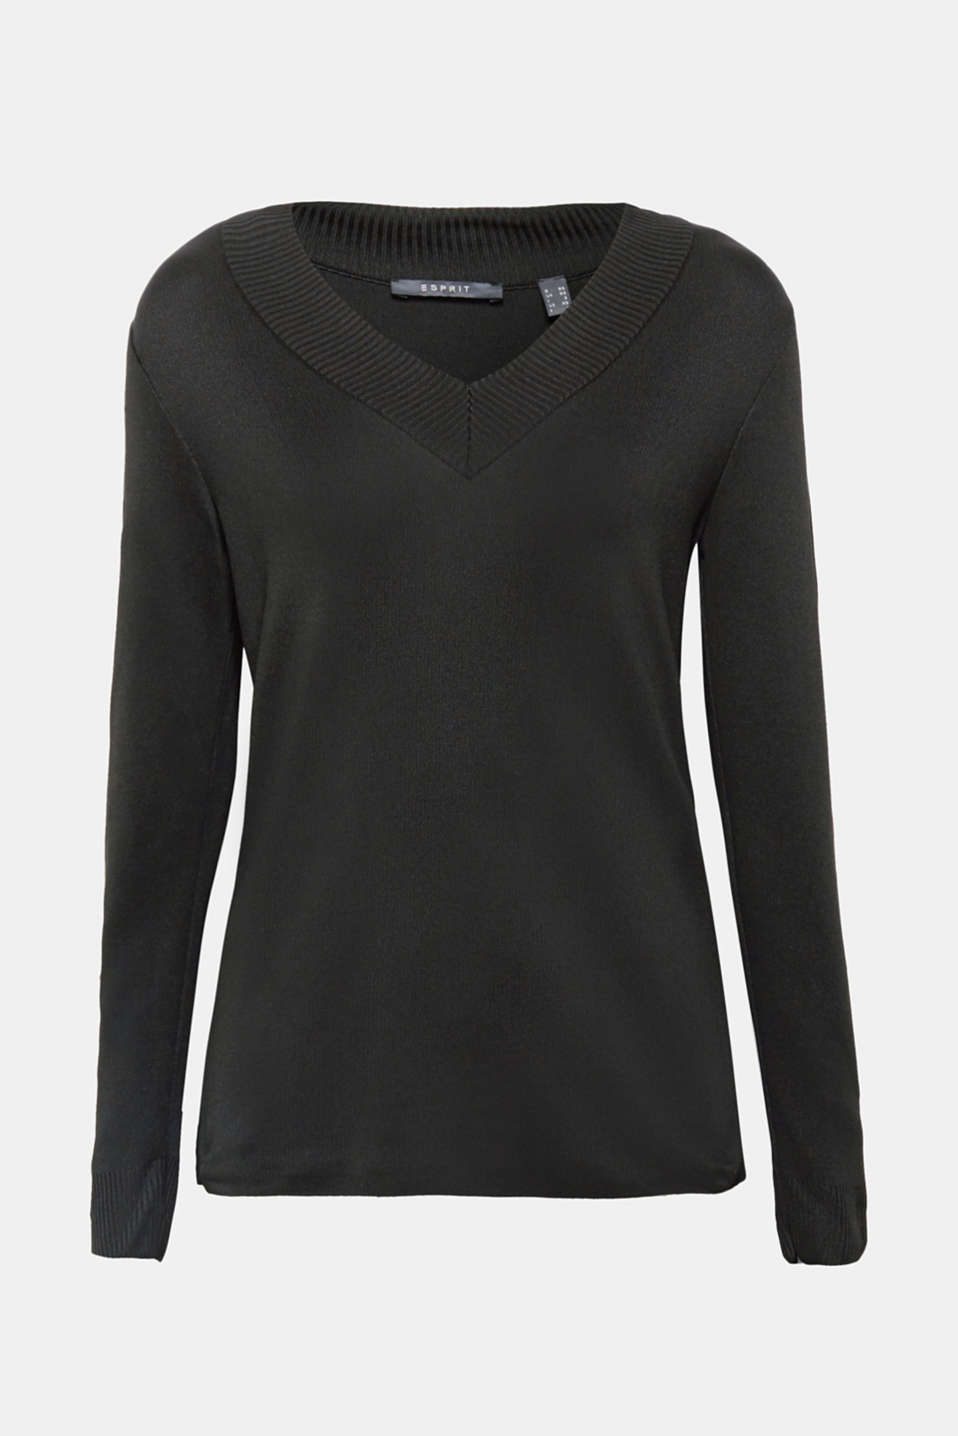 For a sleek, modern look: lightweight jumper in a straight cut with a piqué texture and distinctive v-neckline!